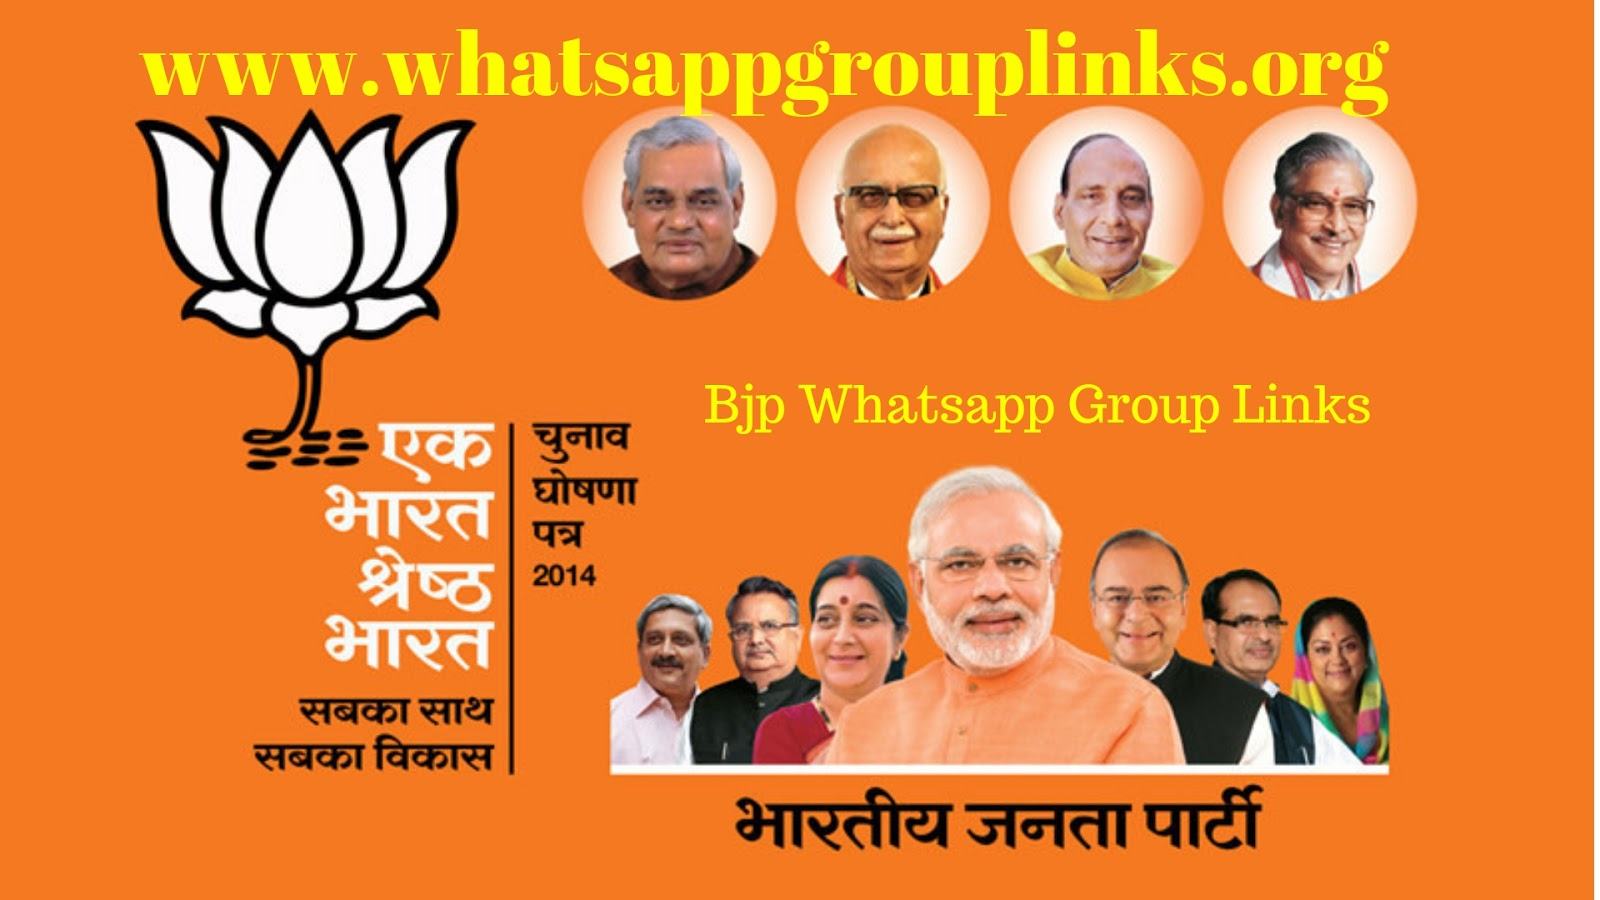 JOIN BJP WHATSAPP GROUP LINKS LIST - Whatsapp Group Links